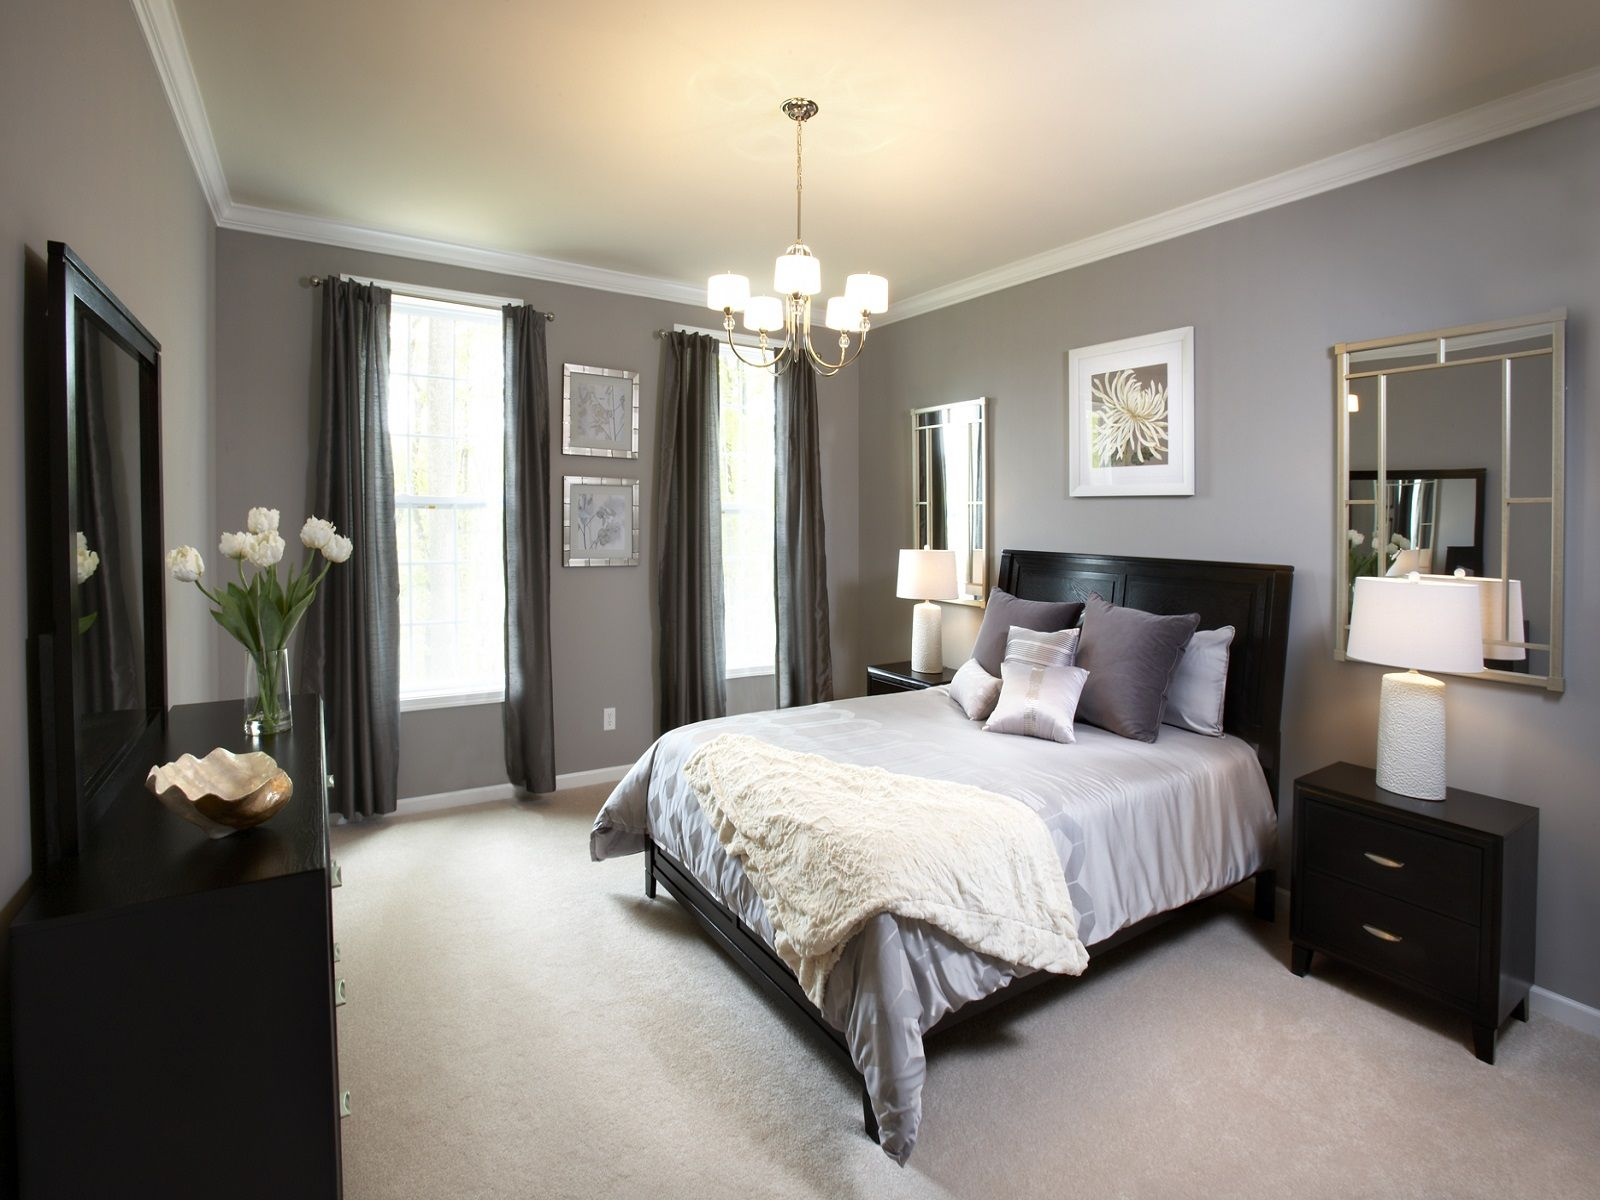 Awesome Bedroom Shade Chandelier Over White Bedding Ideas With Black Wooden Base Bed Frames As Well